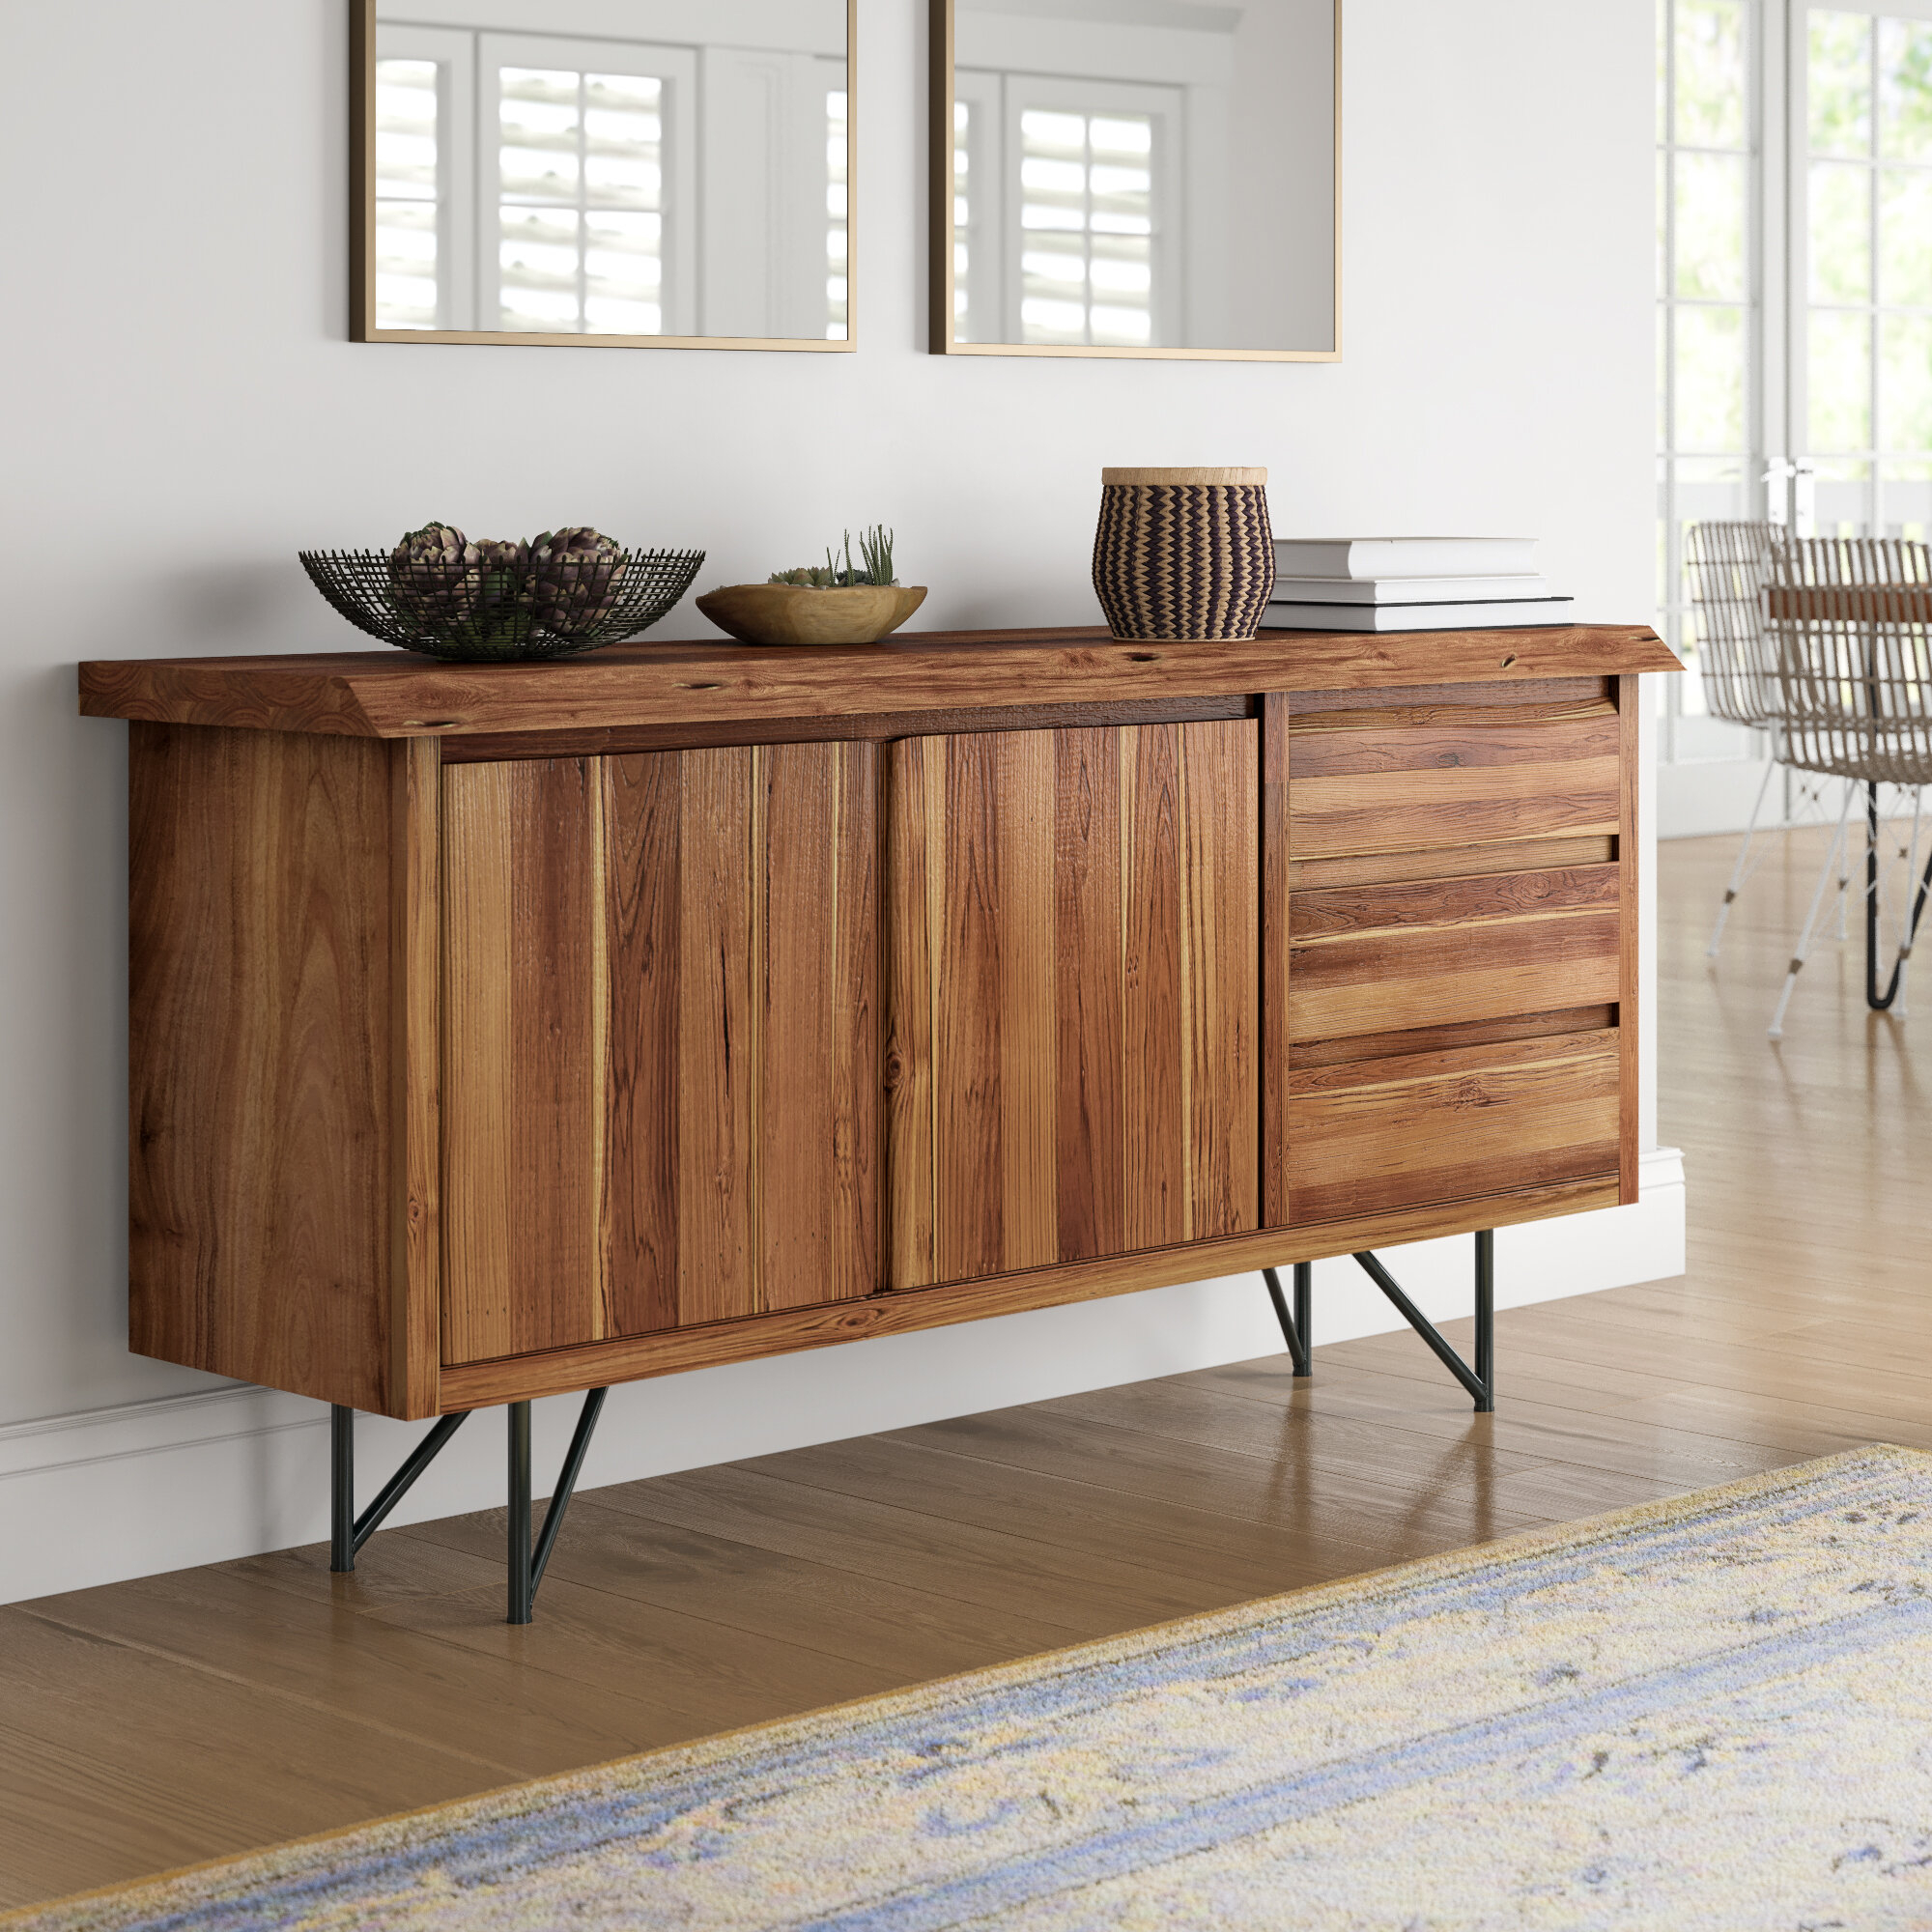 Winschoten Buffet Table pertaining to Industrial Style 3-Drawer Buffets (Image 28 of 30)